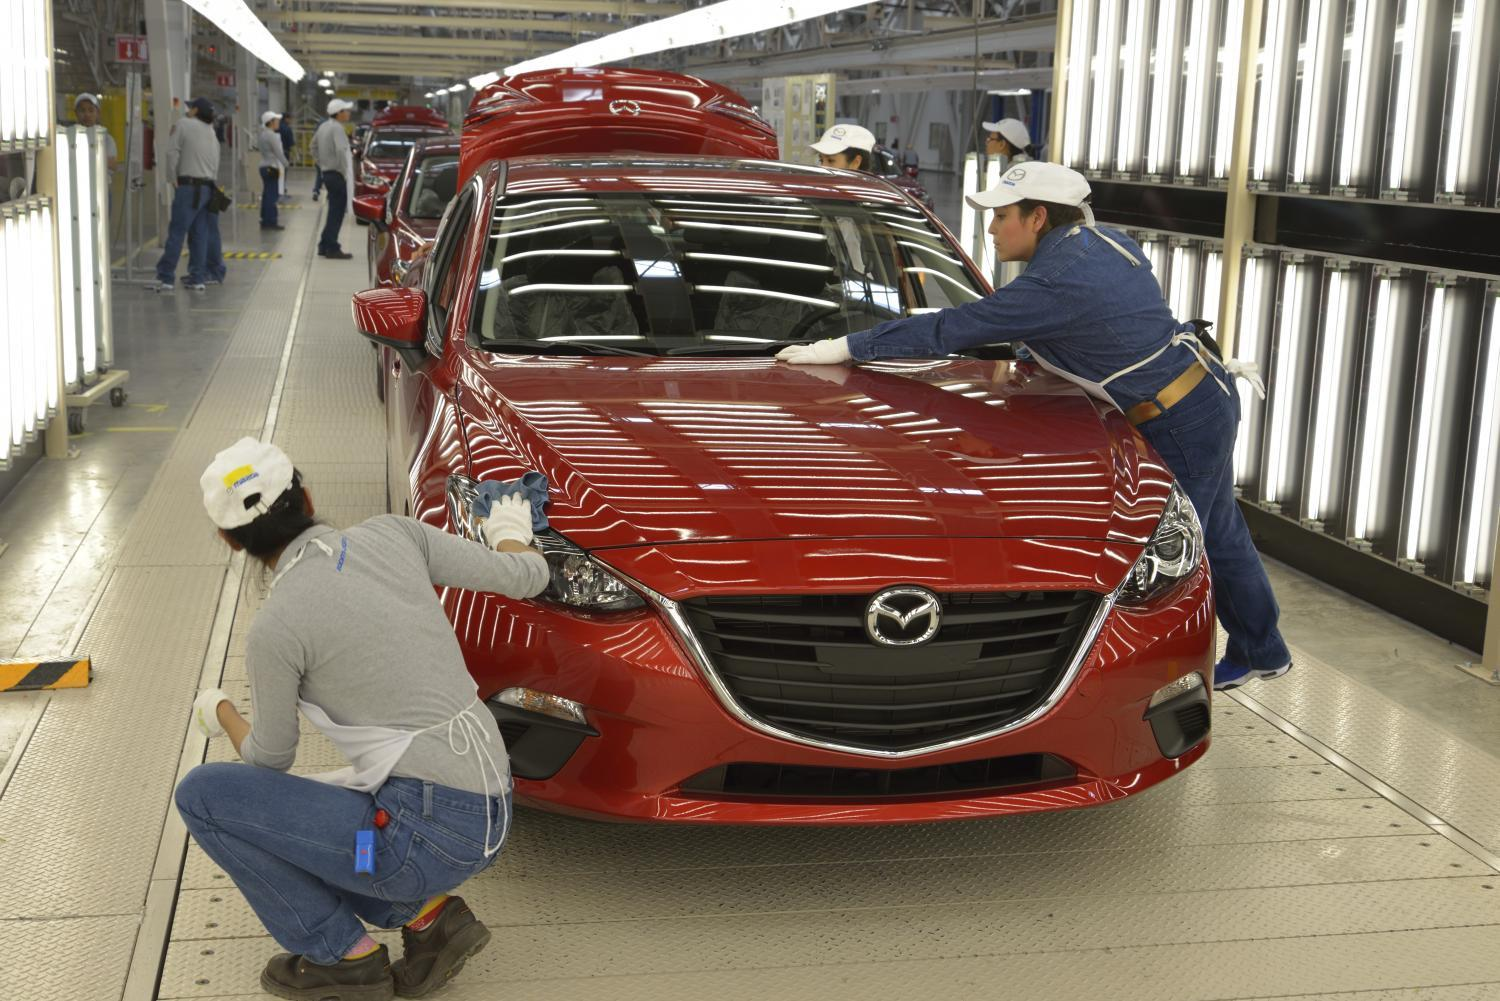 Like other auto makers in Mexico